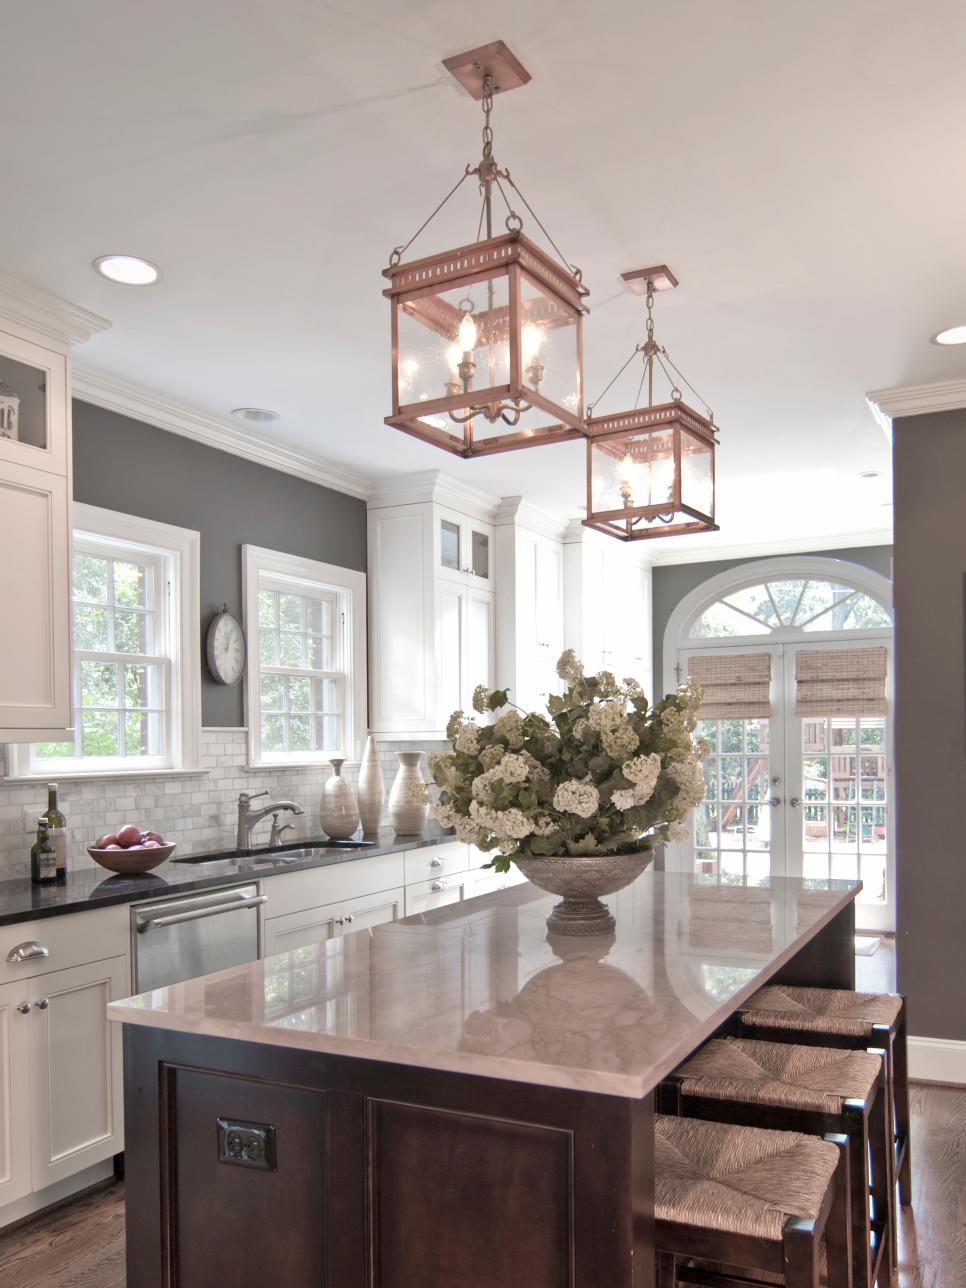 Kitchen Lights Hanging Hanging Kitchen Lighting Hanging Kitchen Lighting I